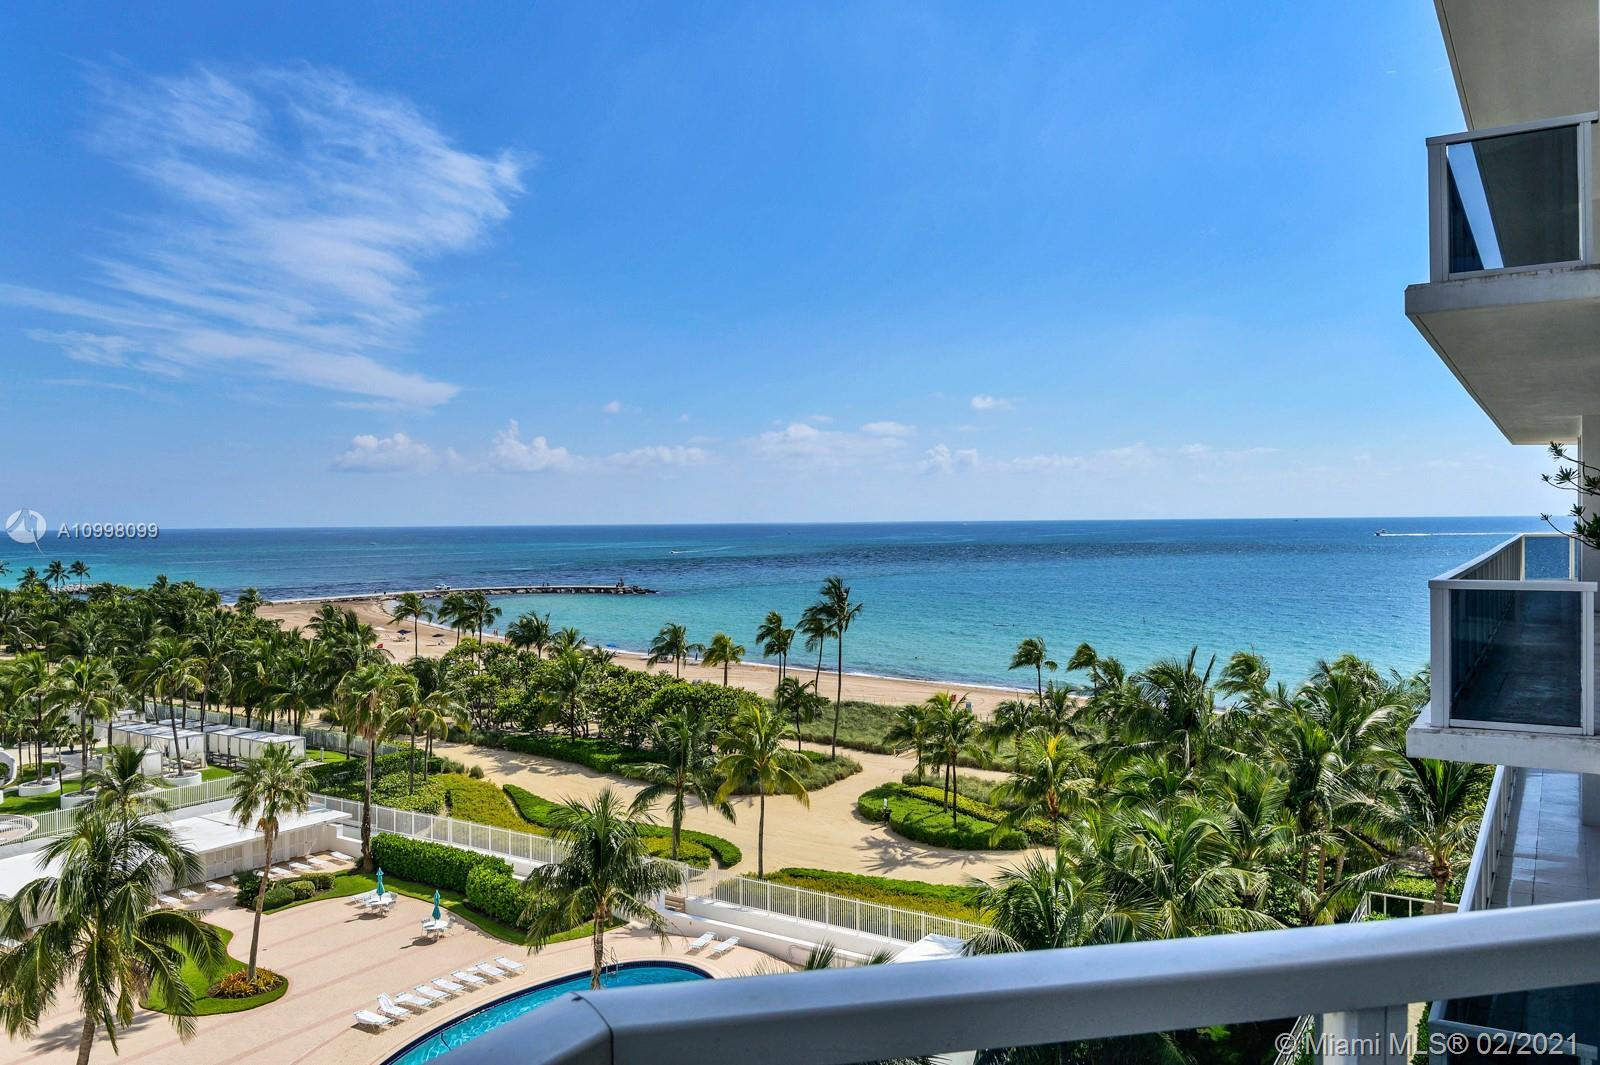 Don't miss this incredible opportunity to own a large condominium residence that feels more like a p